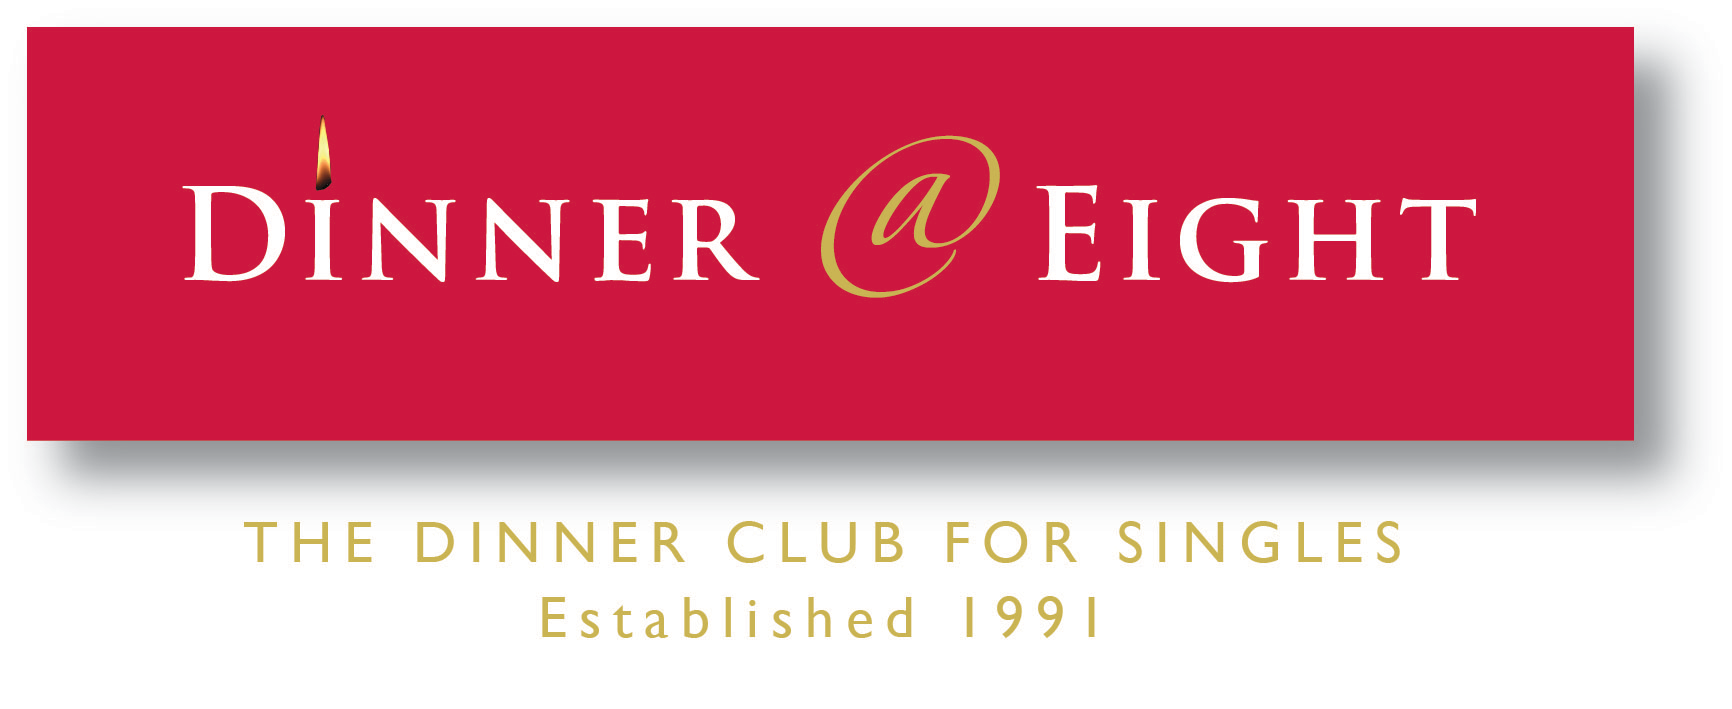 Dinner at eight - fine dining matchmaking experience, executive introduction agency